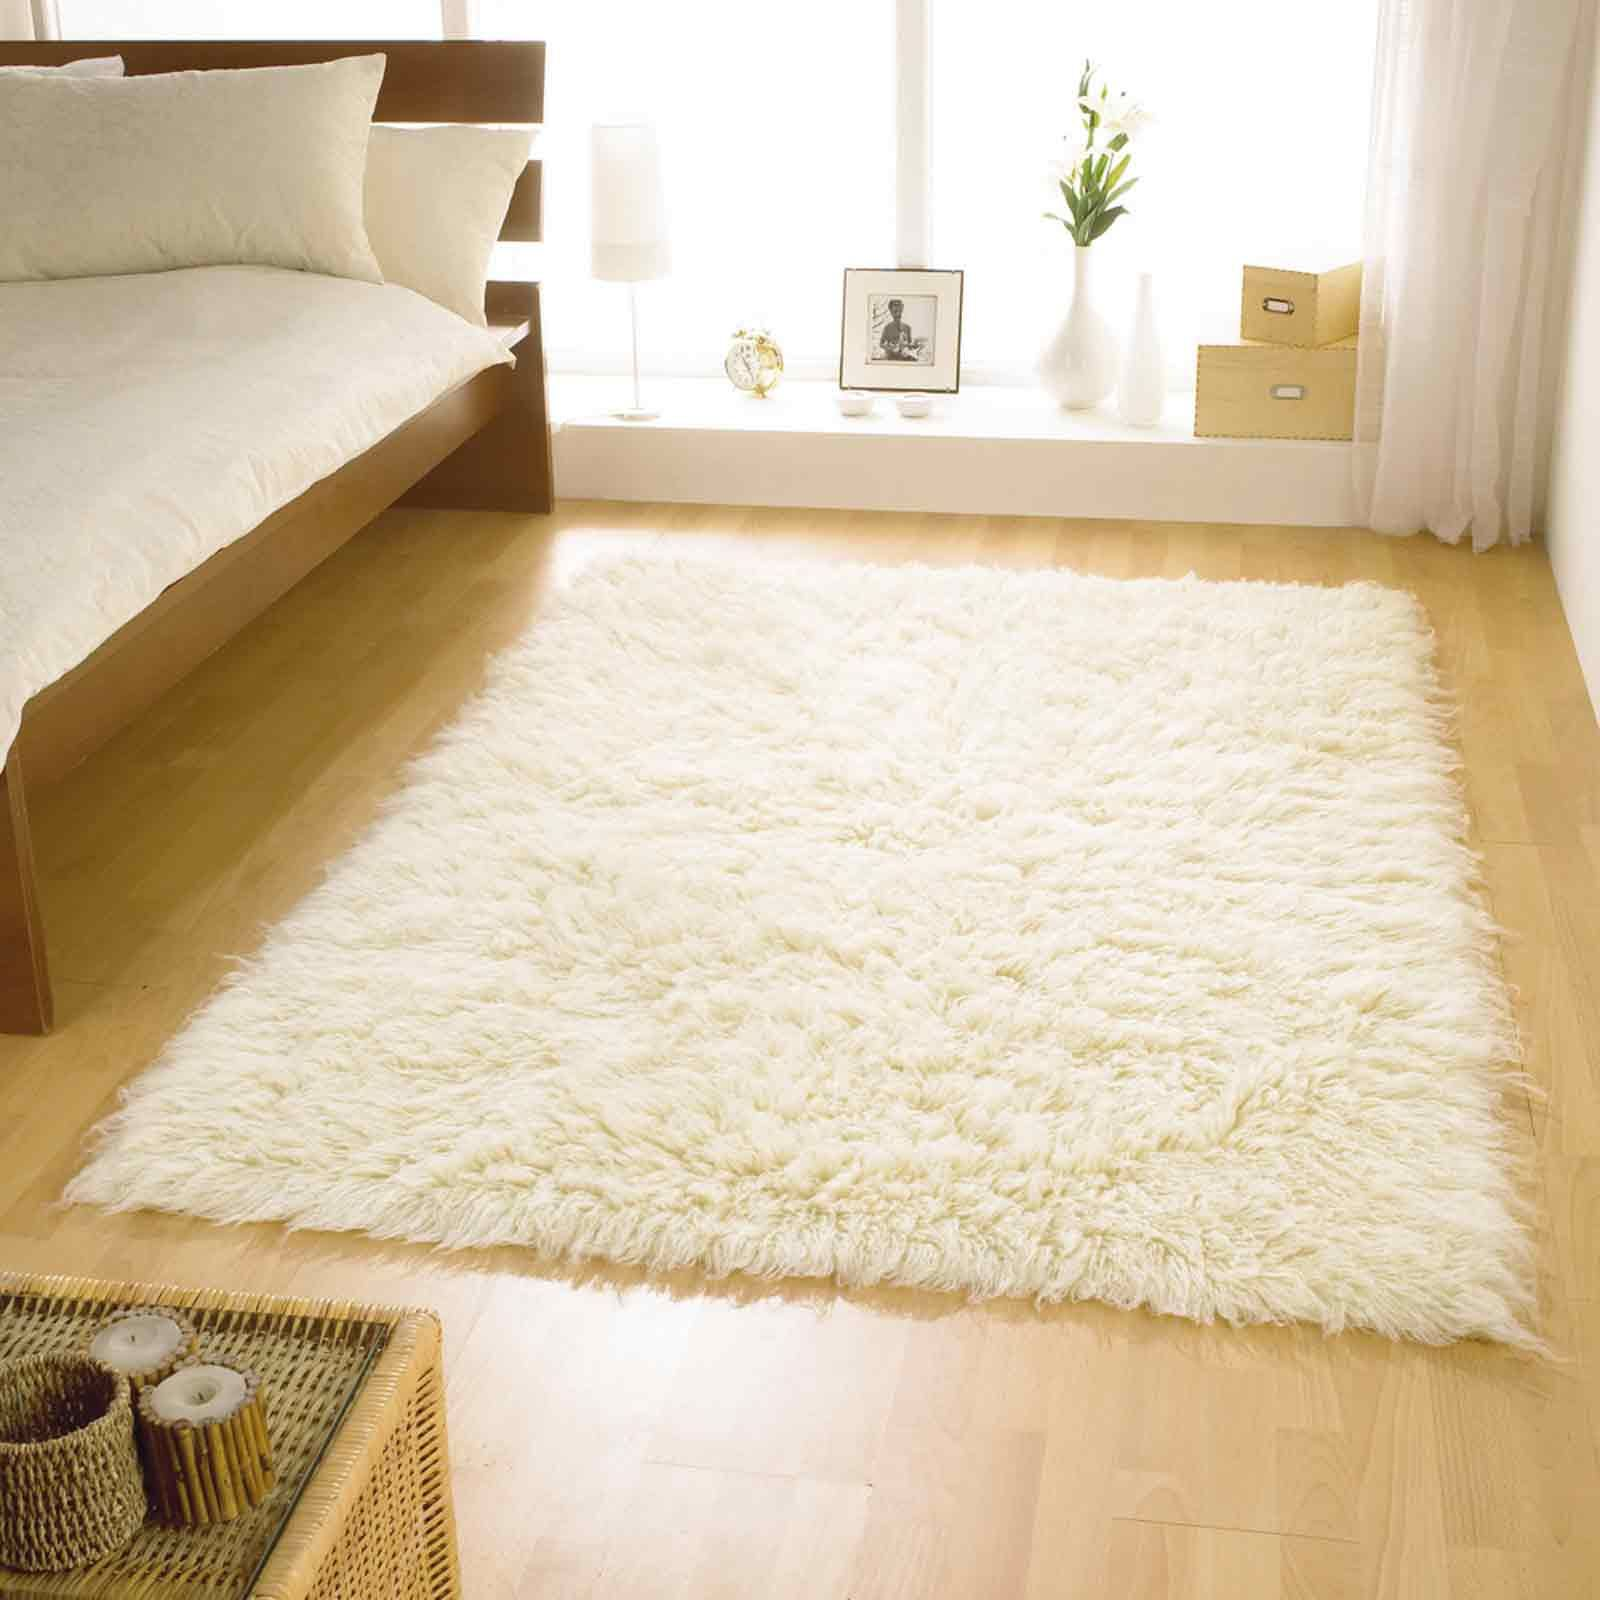 Flokati Rugs In Ivory110x170cm 5 7 Quot X3 7 Ideas For The